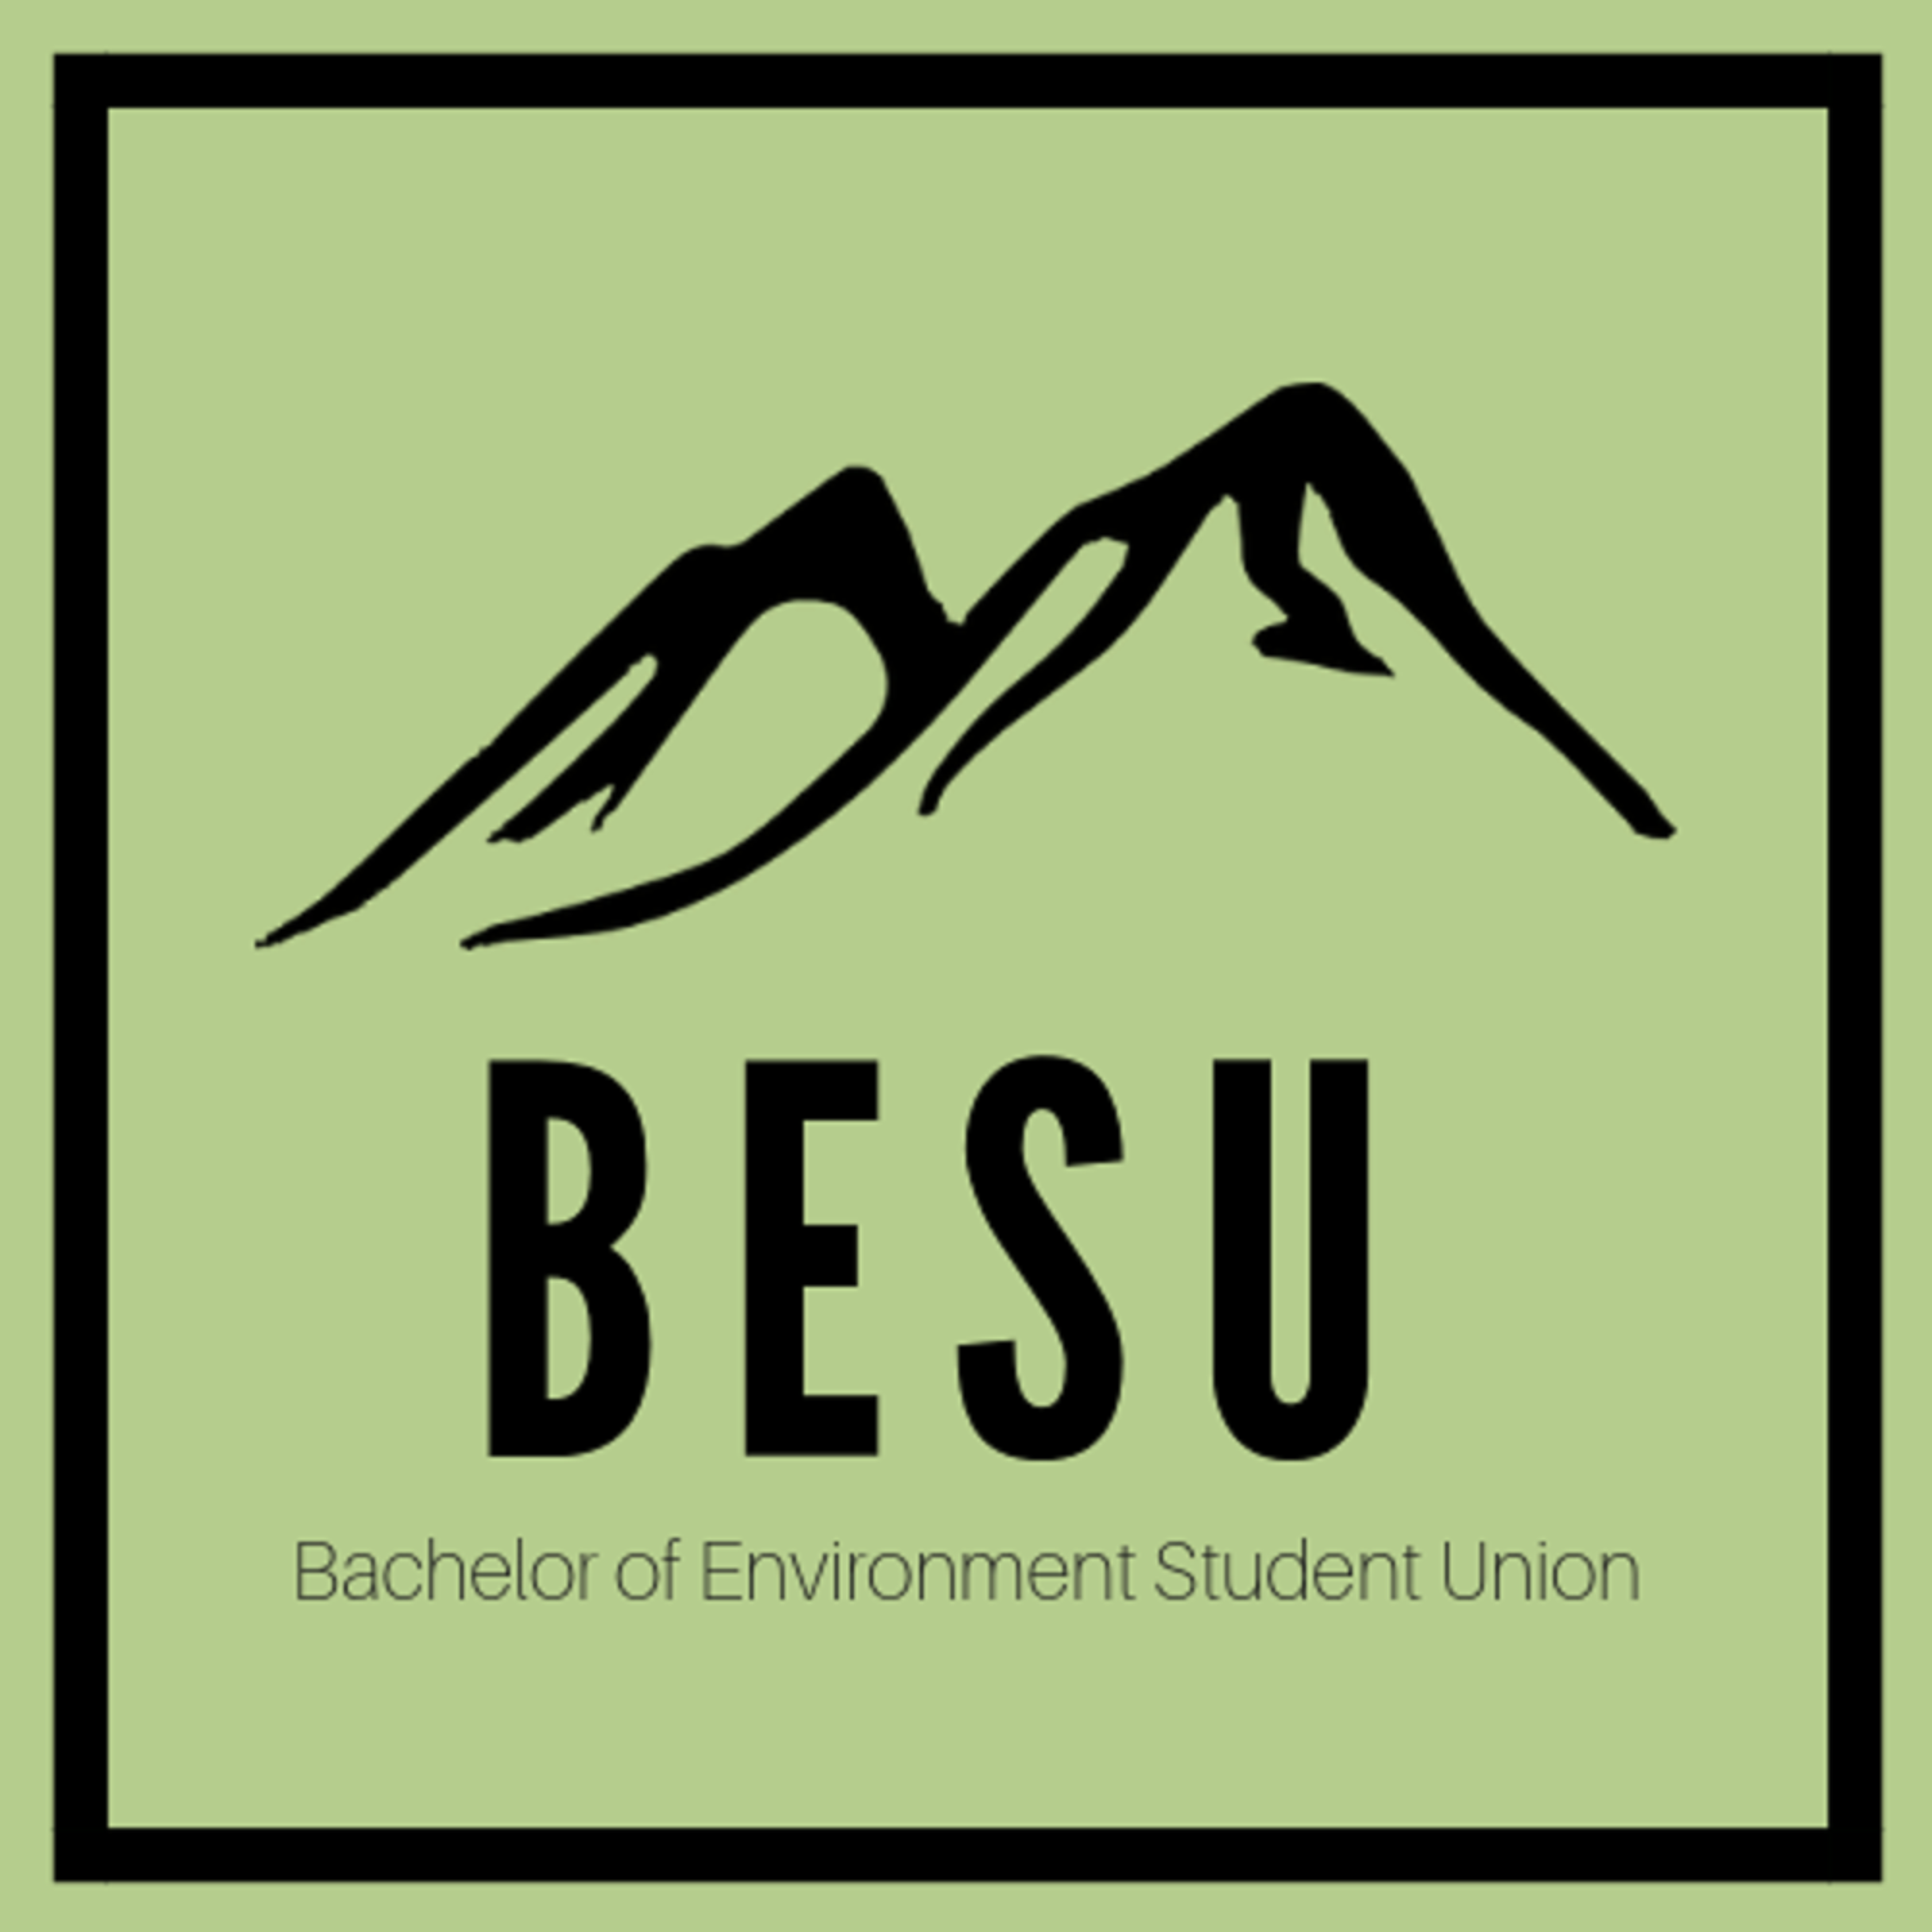 Bachelor of Environment Student Union